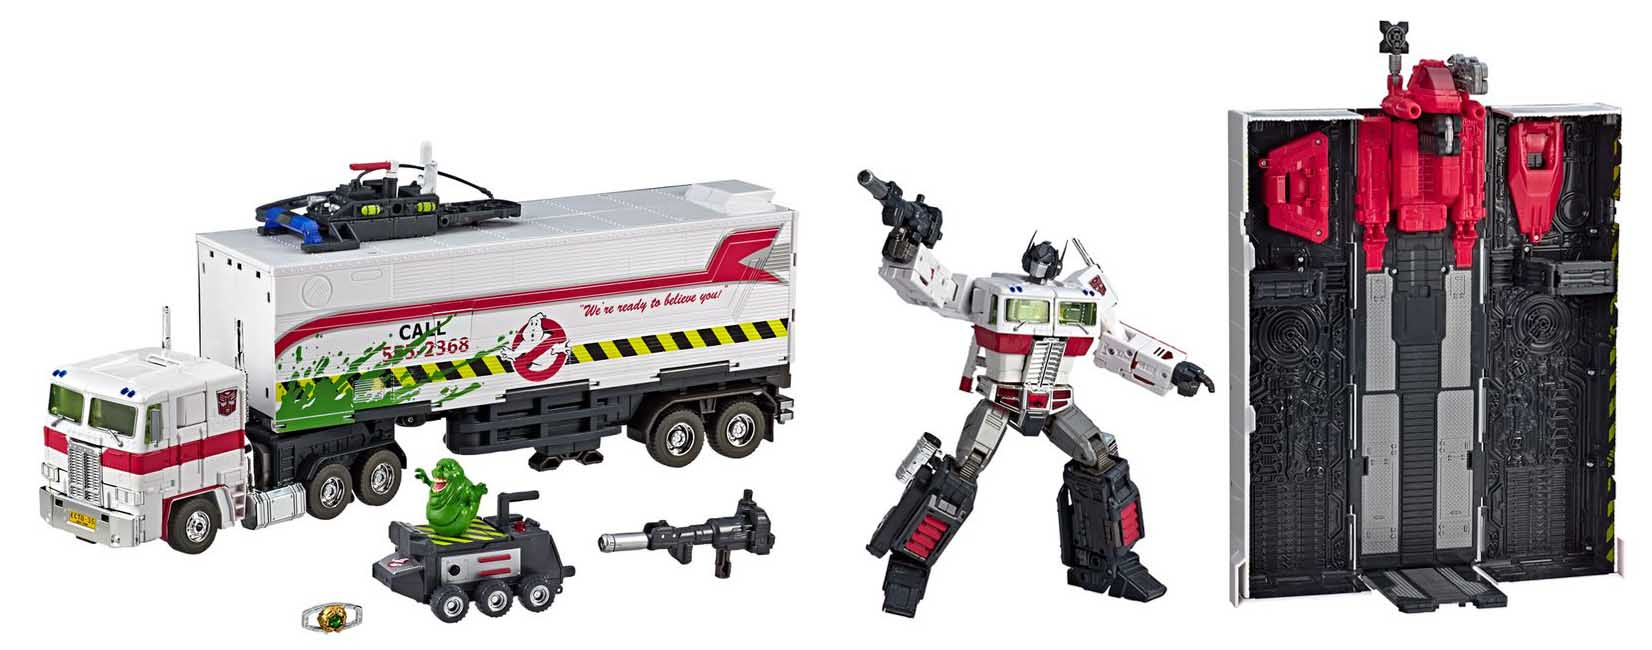 2019年 サンディエゴ・コミコン限定 HASBRO TRANSFORMERS MASTERPIECE MP-10G OPTIMUS PRIME ECTO-35 EDITION